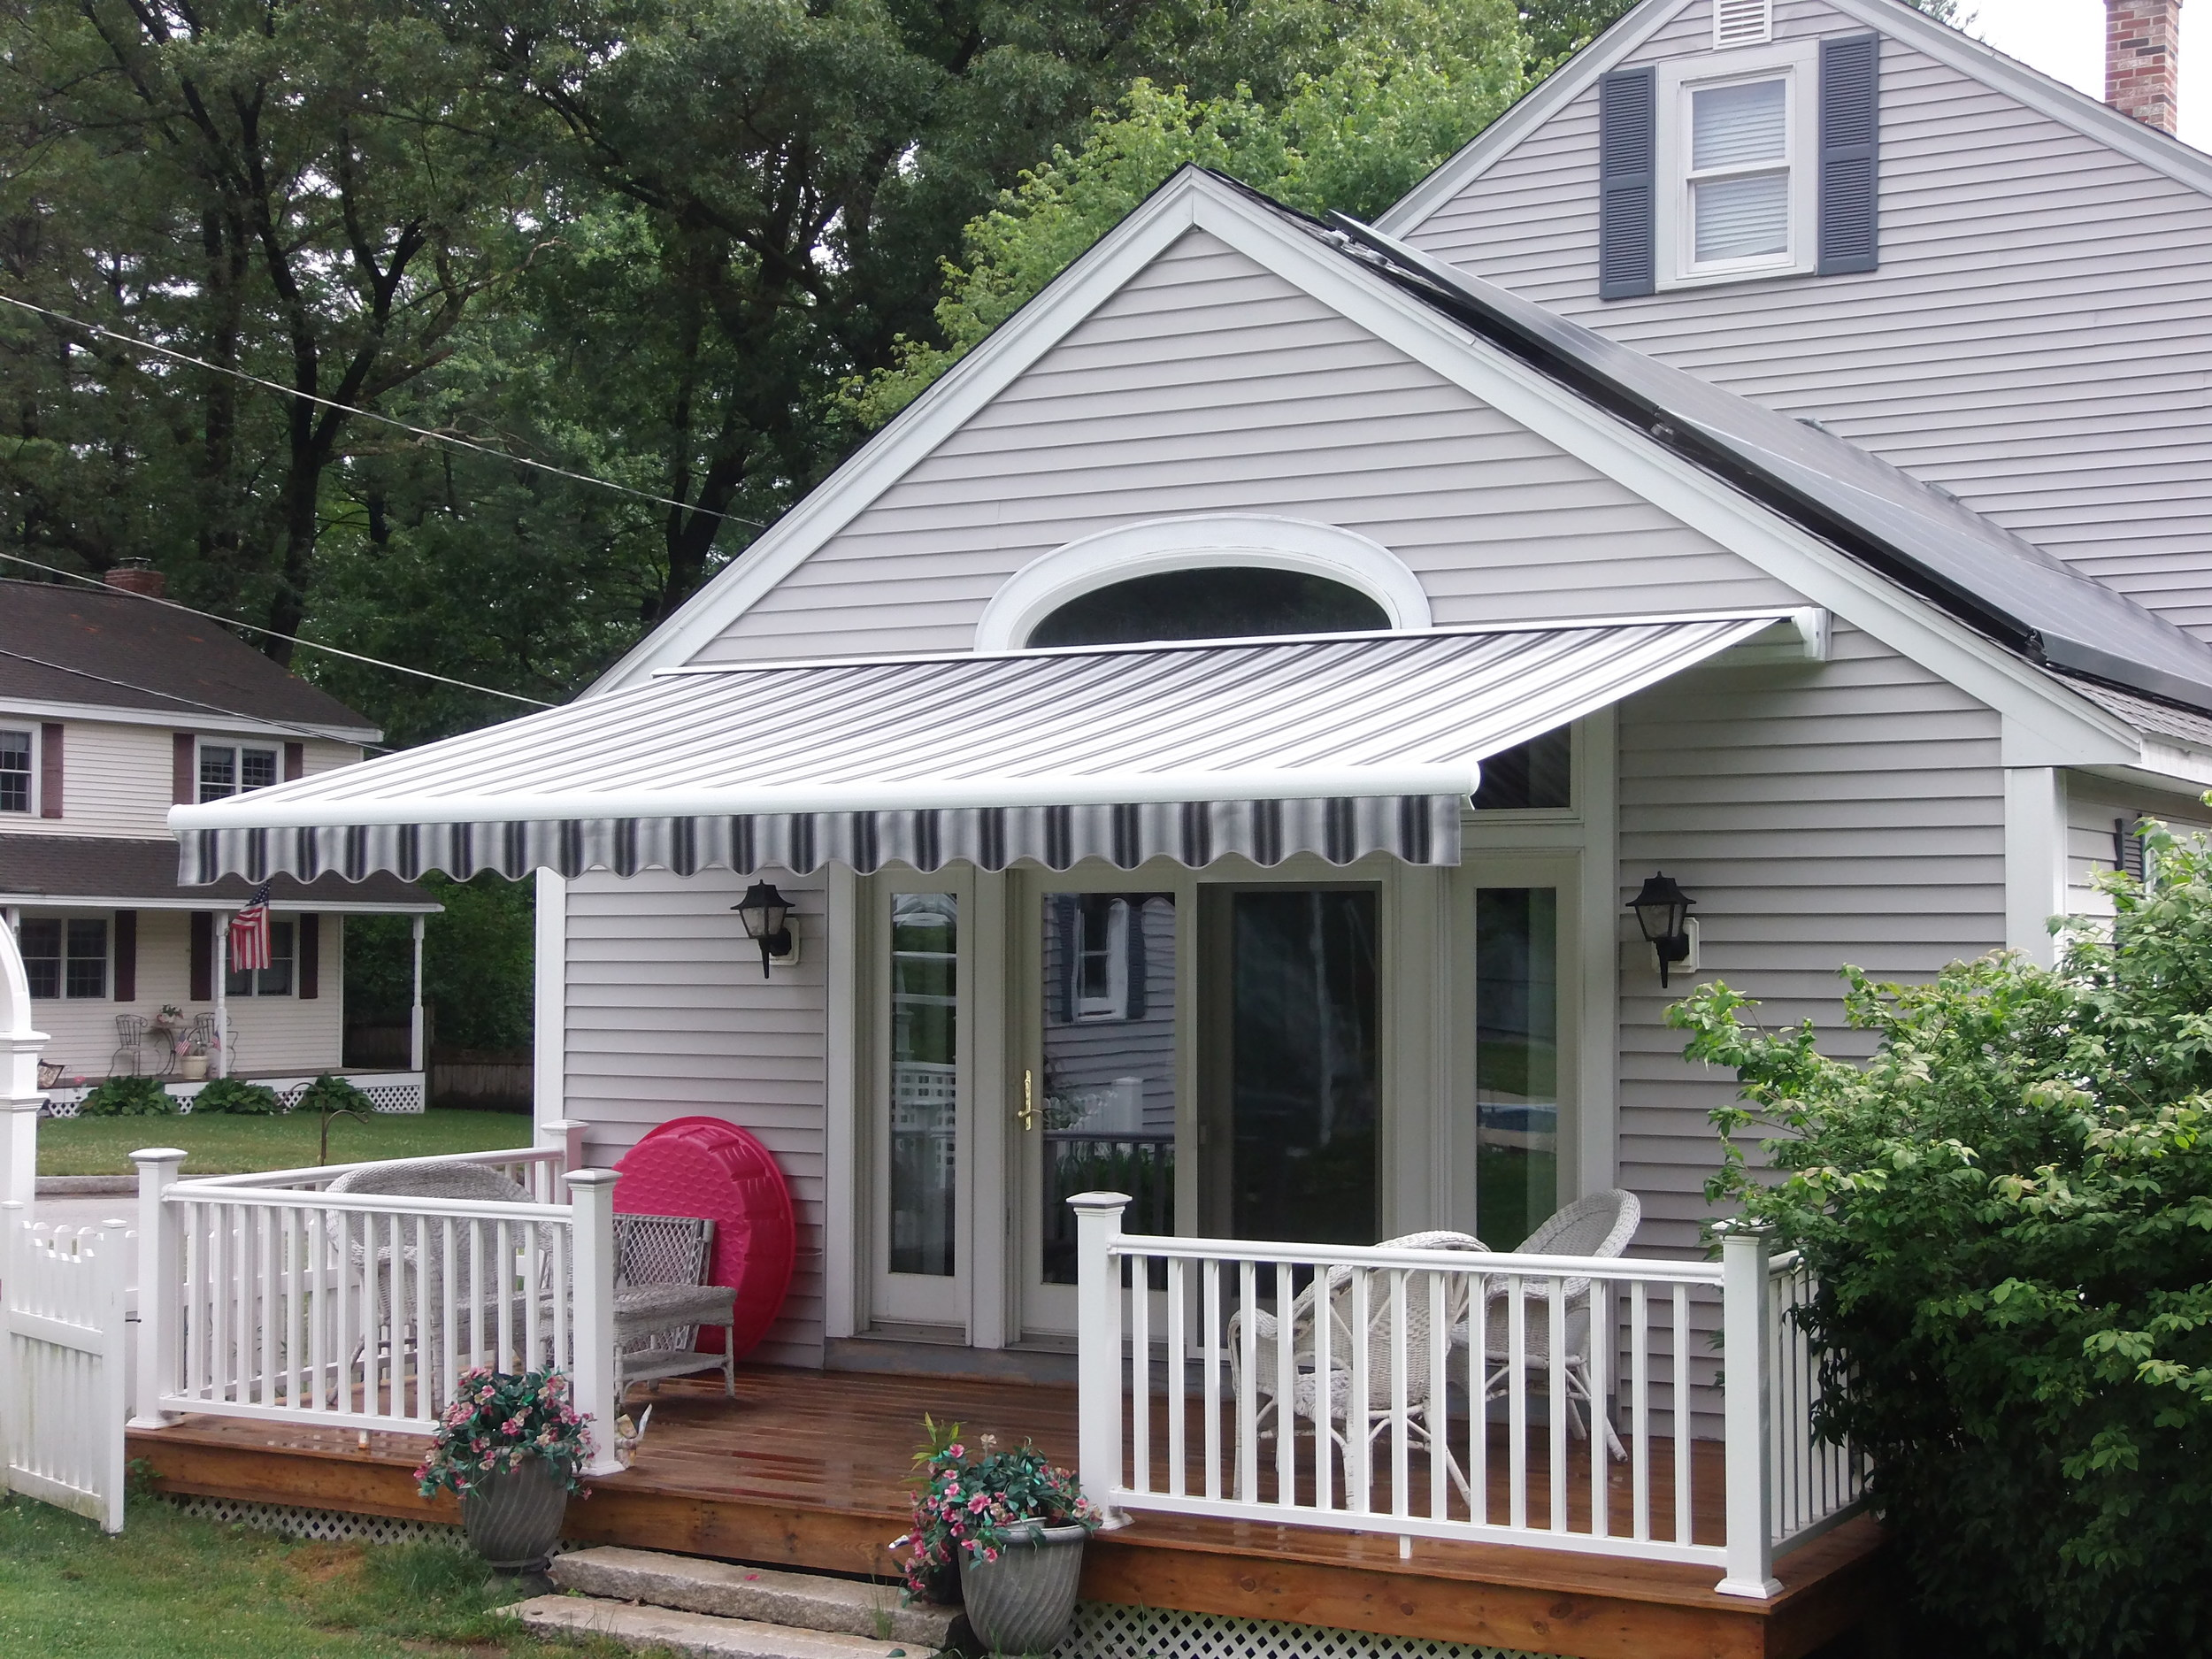 Retractable awning offering shade and style. Installed by Betterliving Sunrooms of NH in Chelmsford, MA.